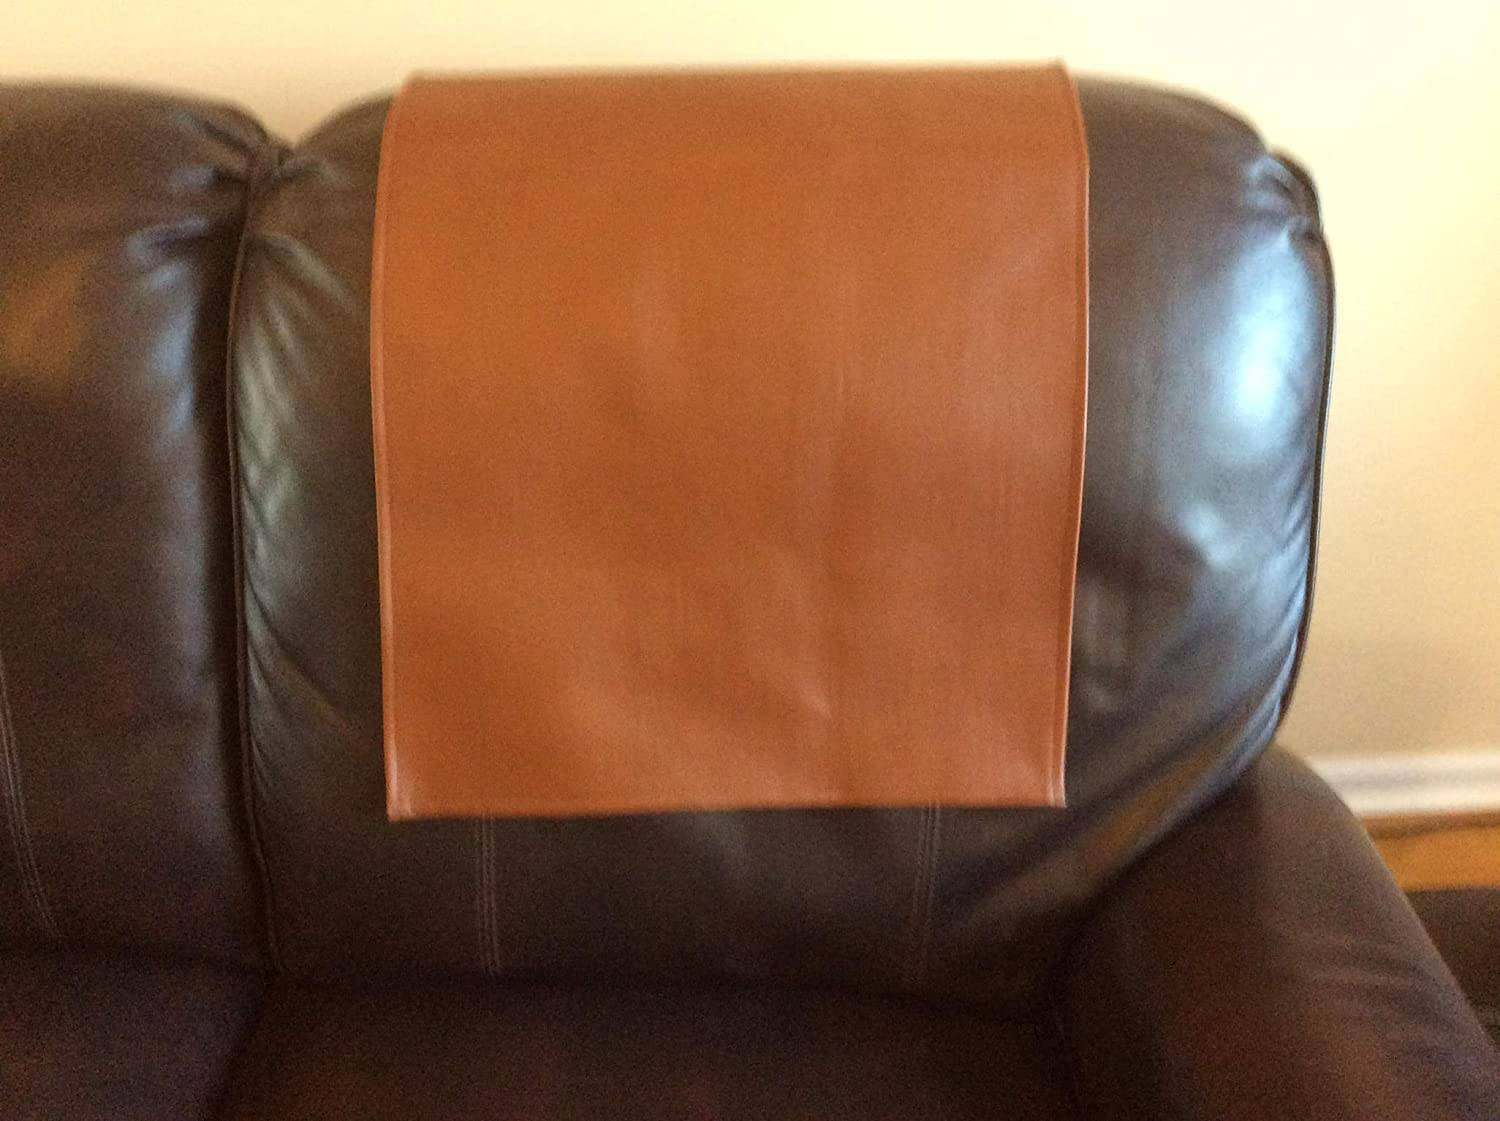 Recliner Headrest cover recliners Furniture Protector slipcovers for furniture Caramel Color By: Bittlemen Co.17x27